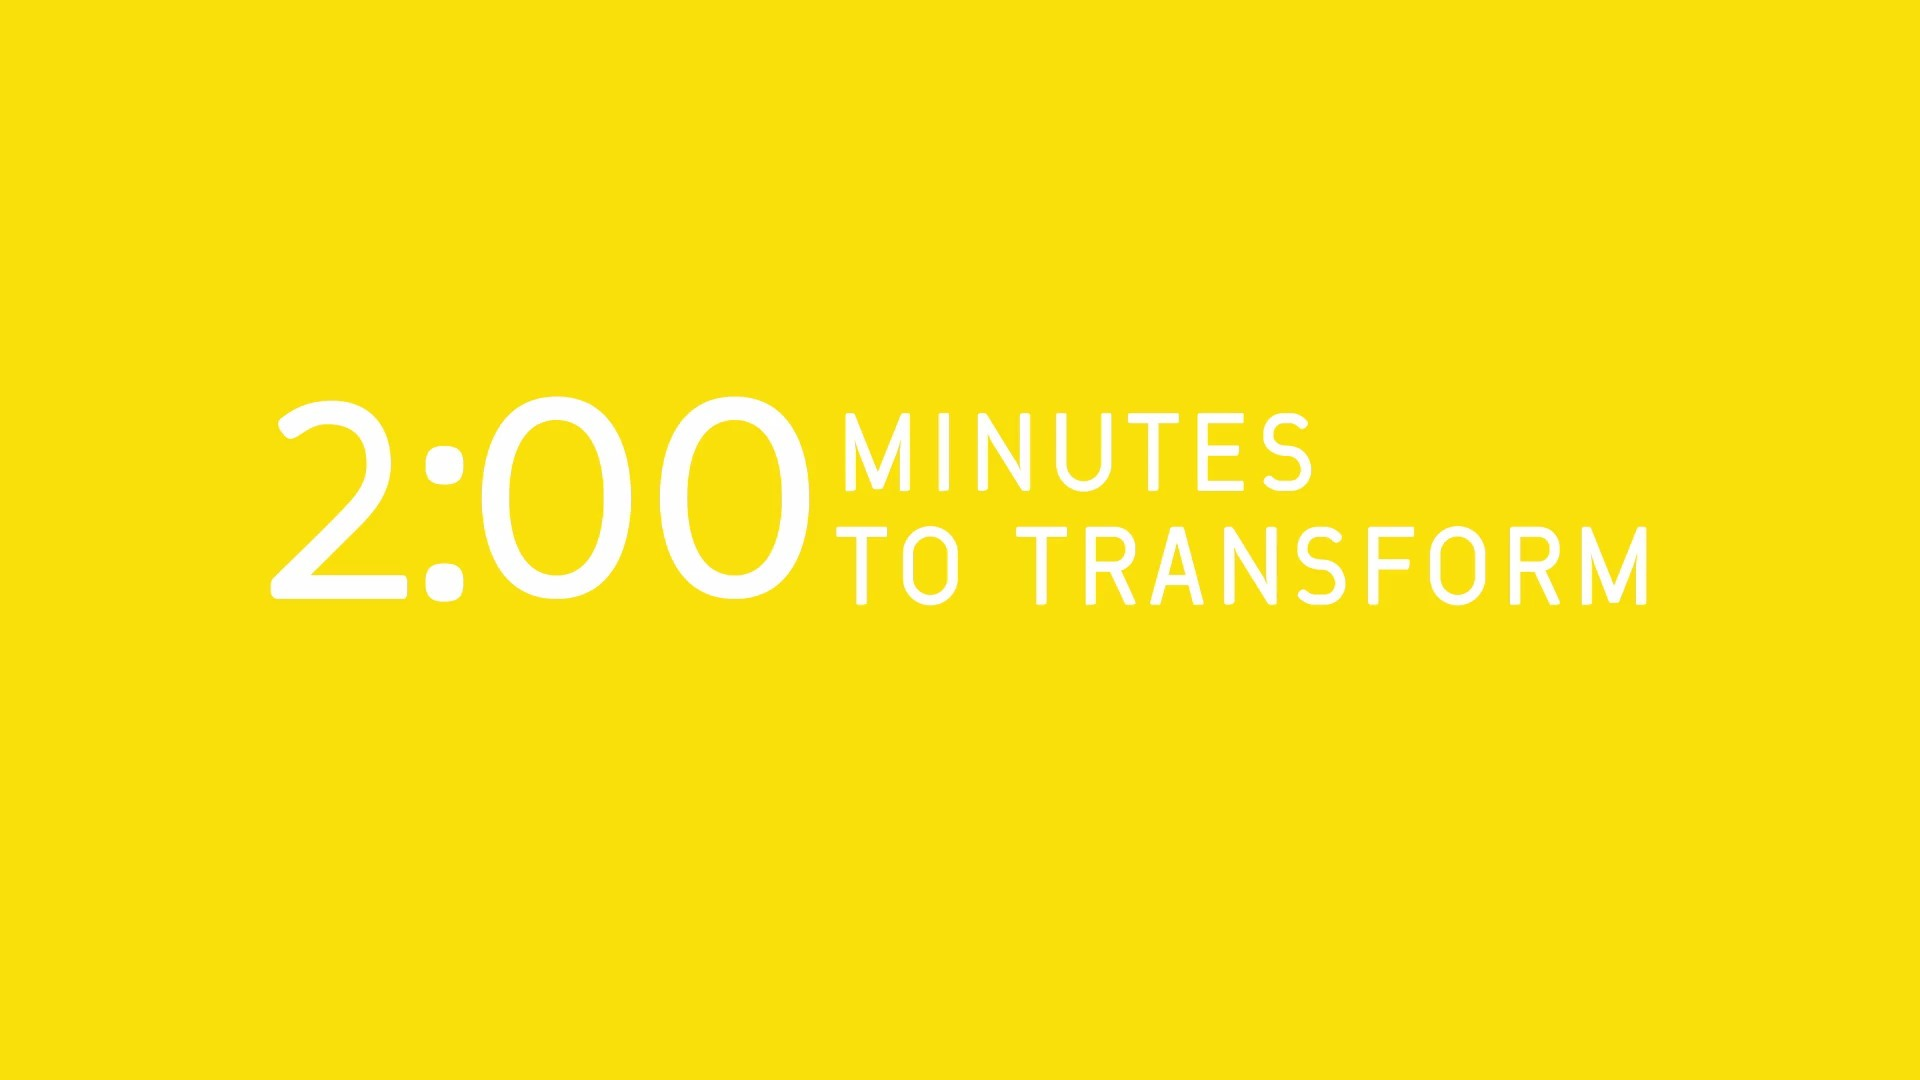 Take two minutes to transform your life